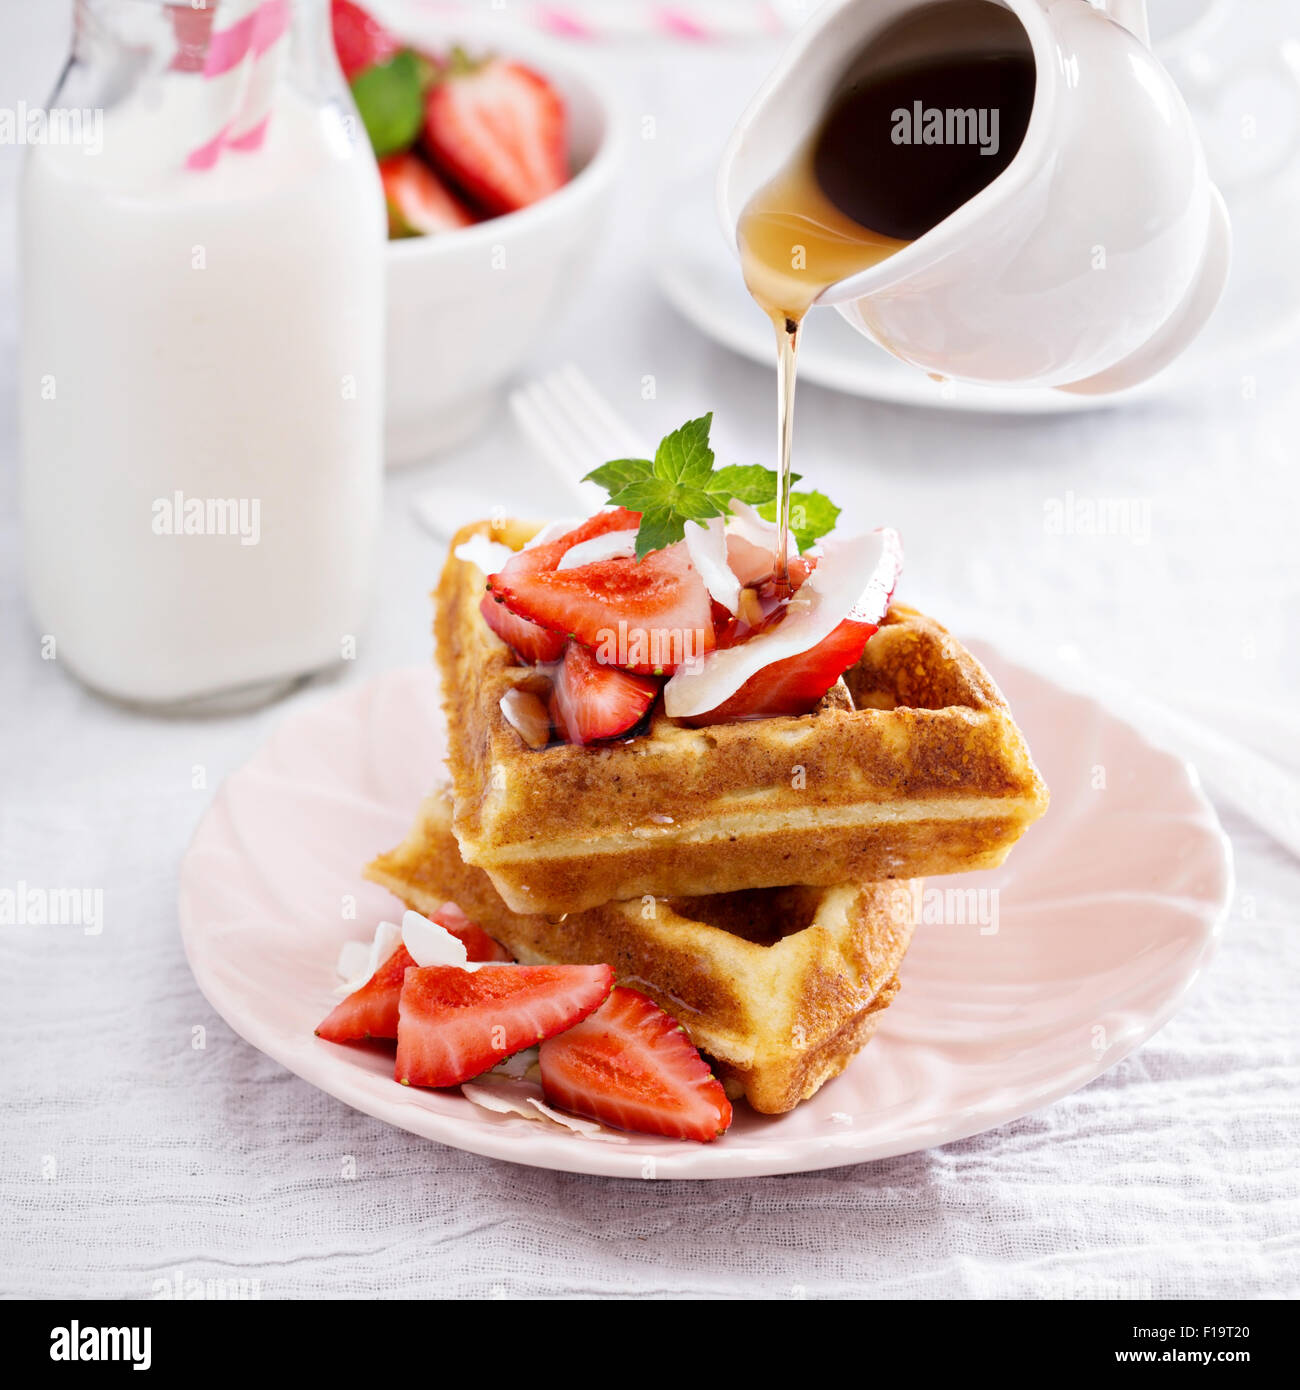 Ricotta waffles served with fresh strawberries and maple syrup - Stock Image